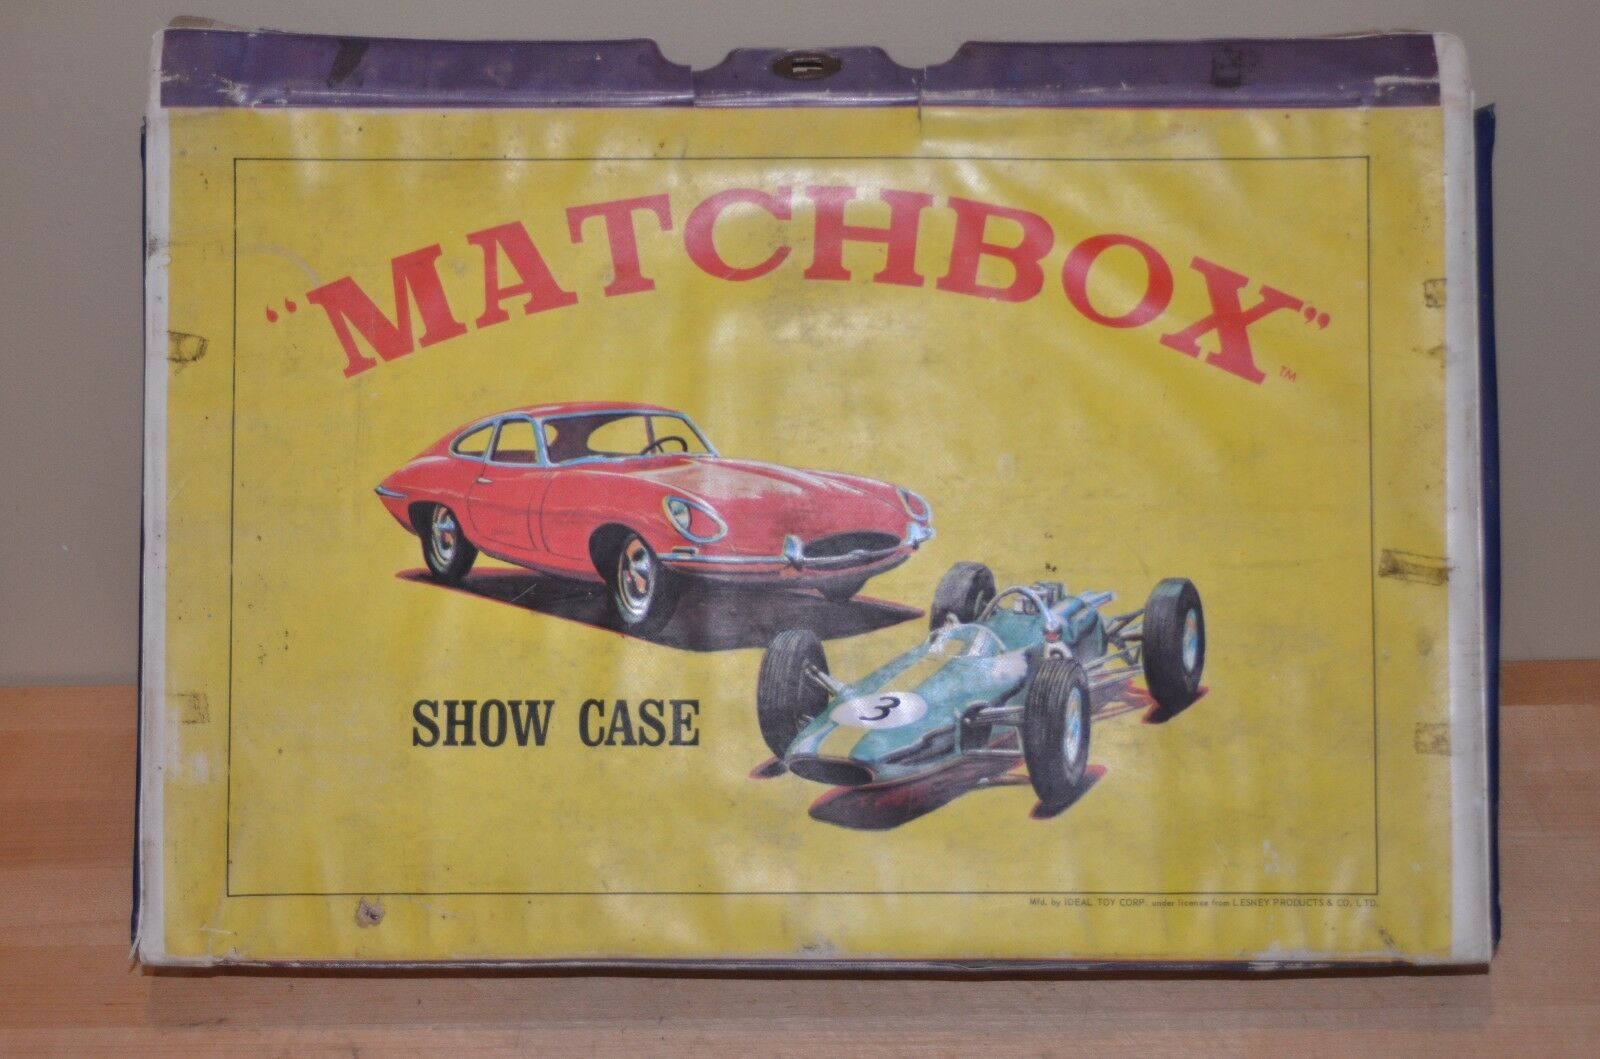 RARE VINTAGE 1960s IDEAL Made For Matchbox Lesney ShowCase Show Case car storage